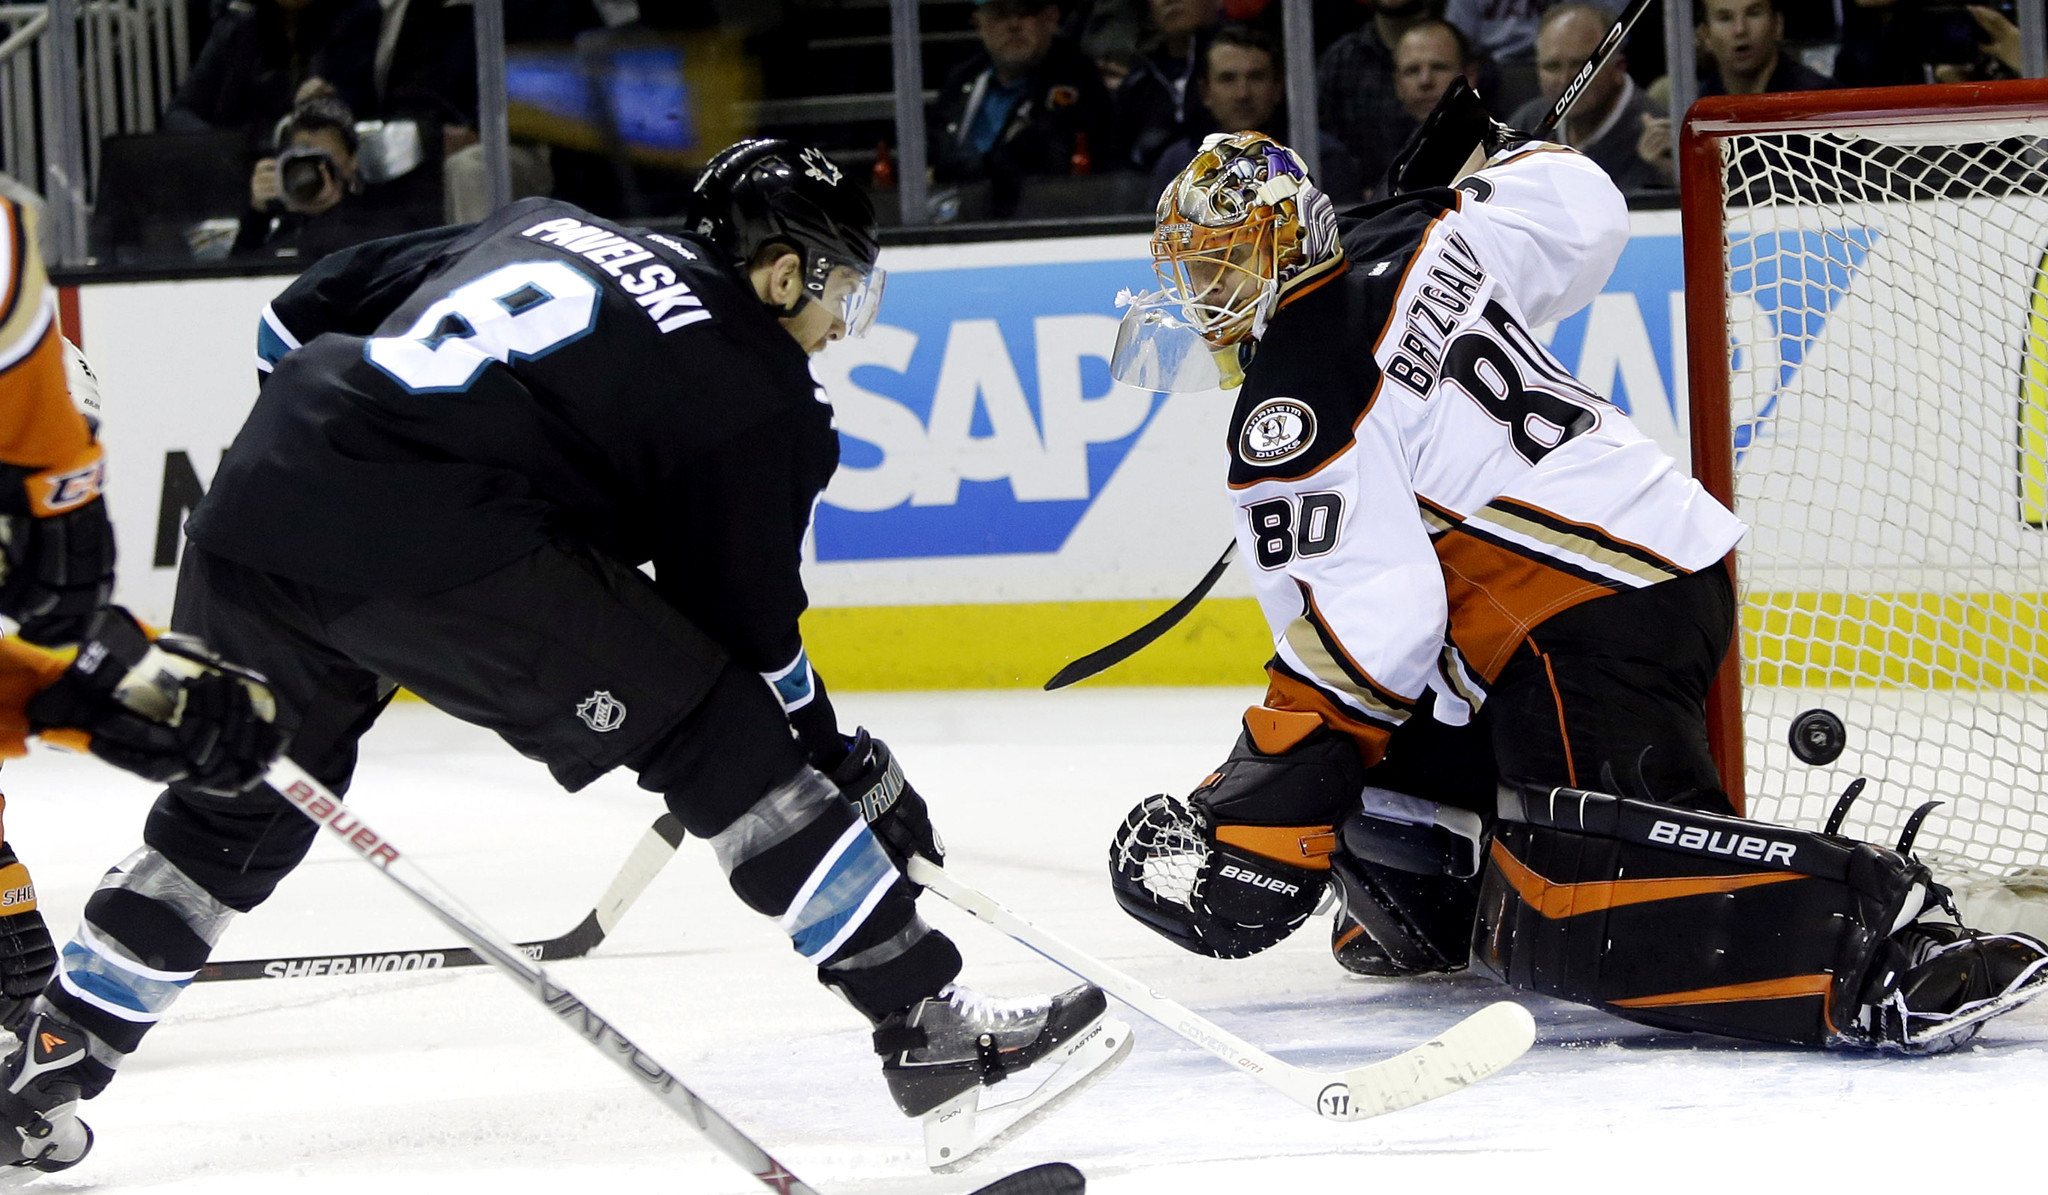 Ducks' night goes wrong in second period, fall to Sharks, 6-3